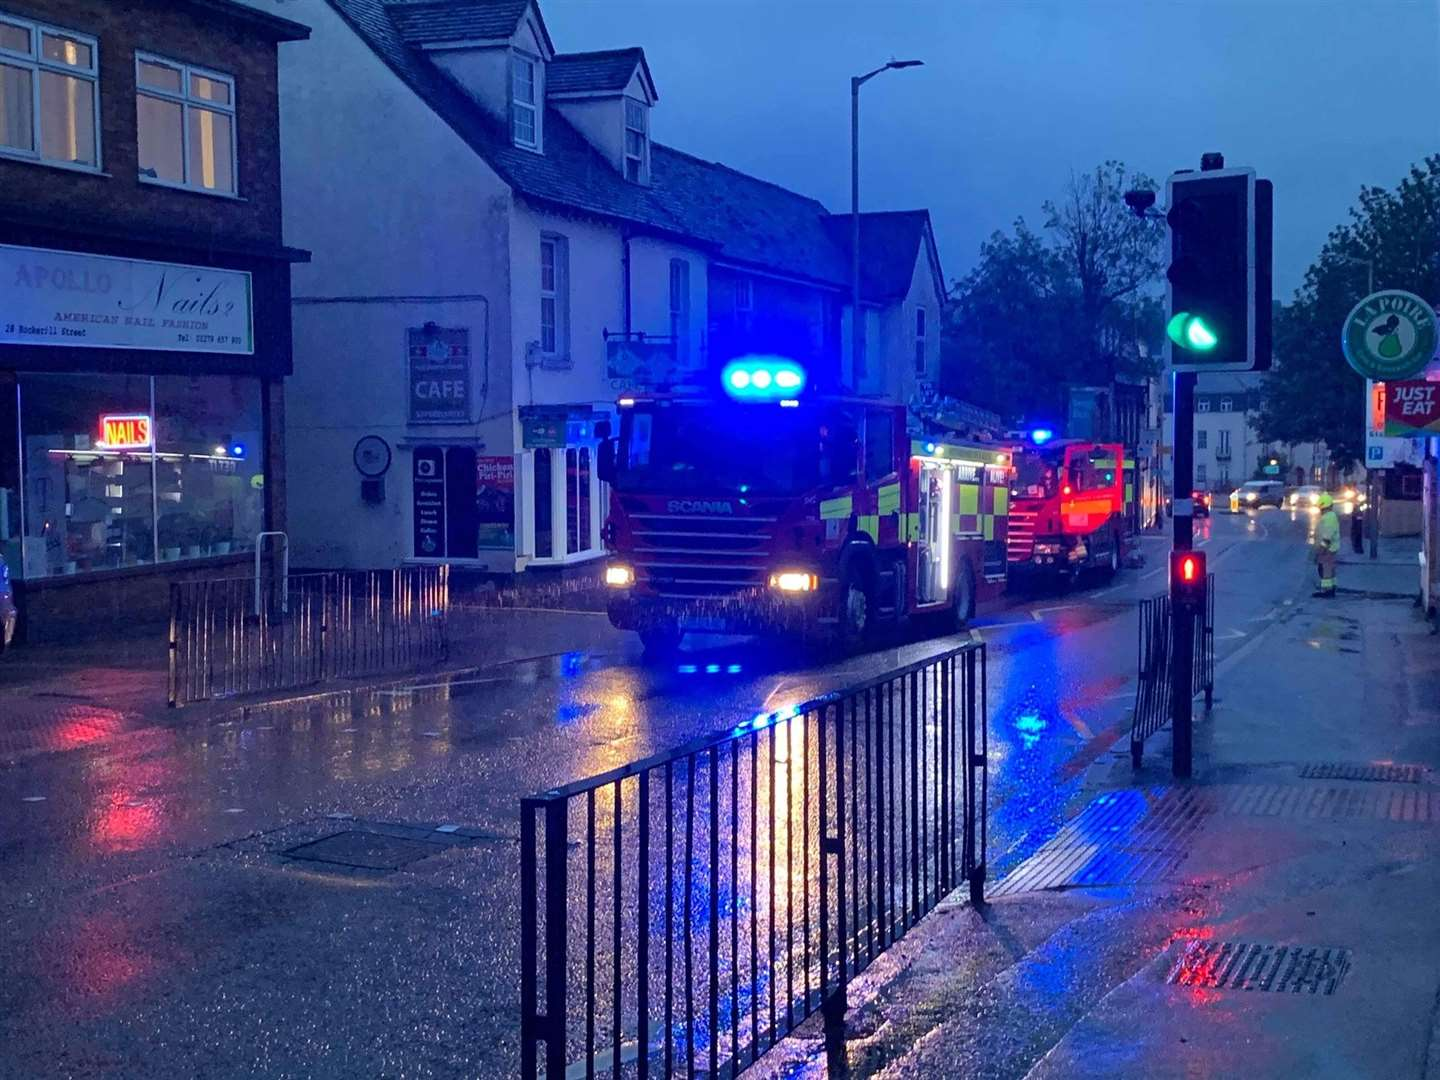 The two fire engines outside Santos cafe and coffee shop in Hockerill StreetPicture: Martin Tyler